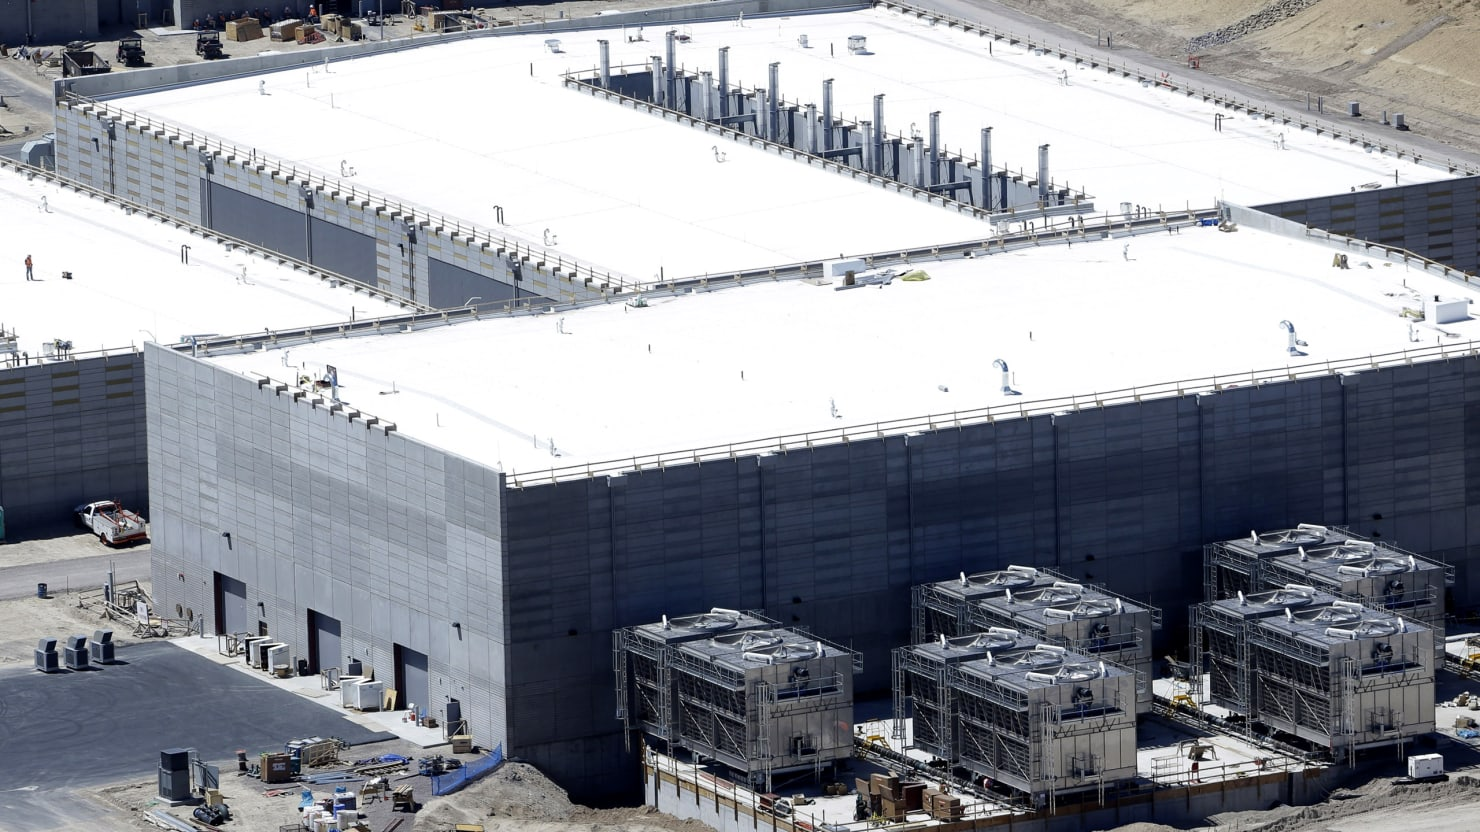 Behold the NSA's Dark Star: the Utah Data Center